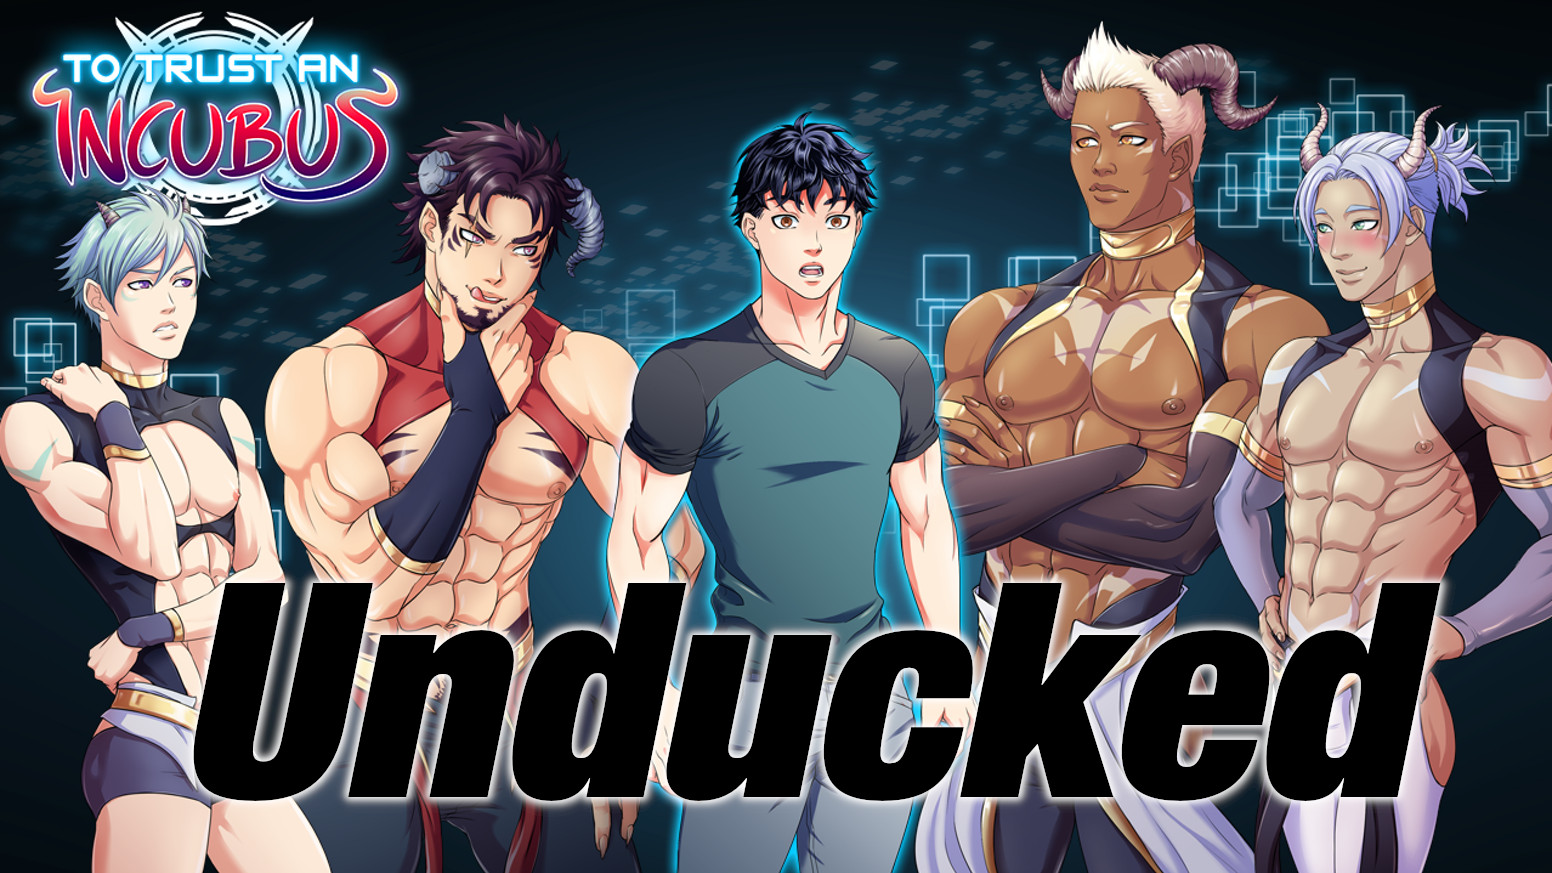 To Trust an Incubus – Full Release Gameplay UNDUCKED